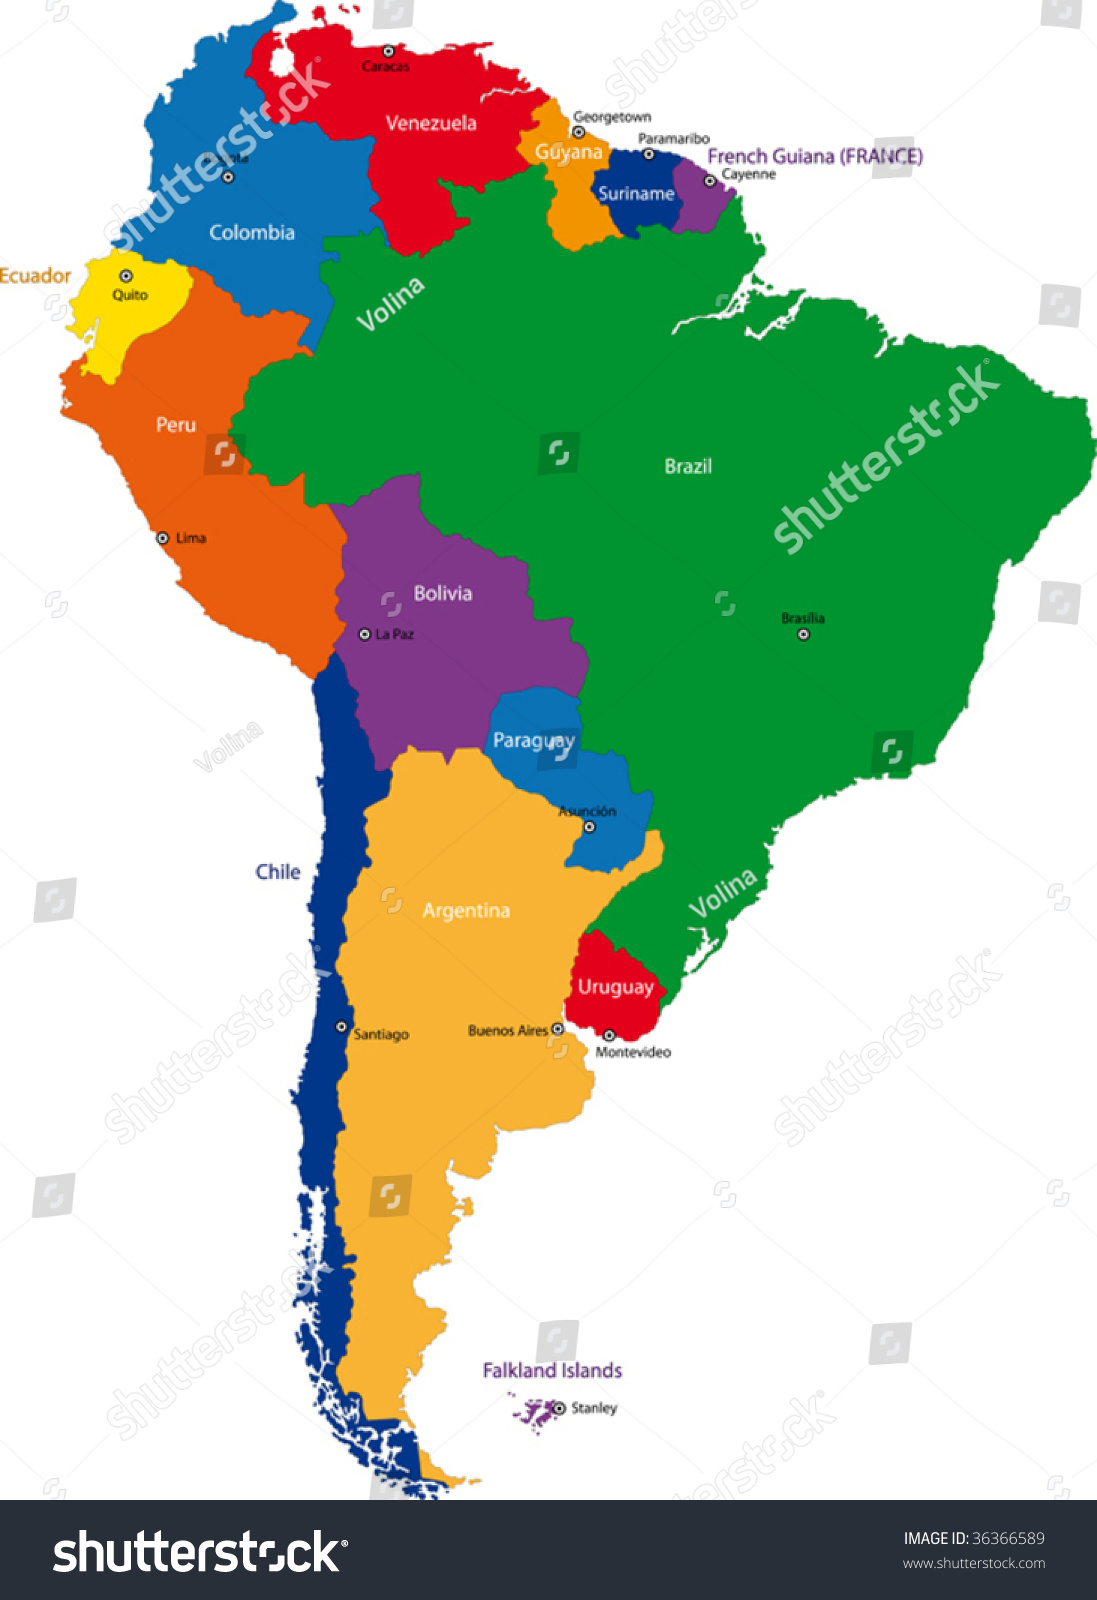 Colorful South America Map Countries Capital Stock Vector - South america map labeled